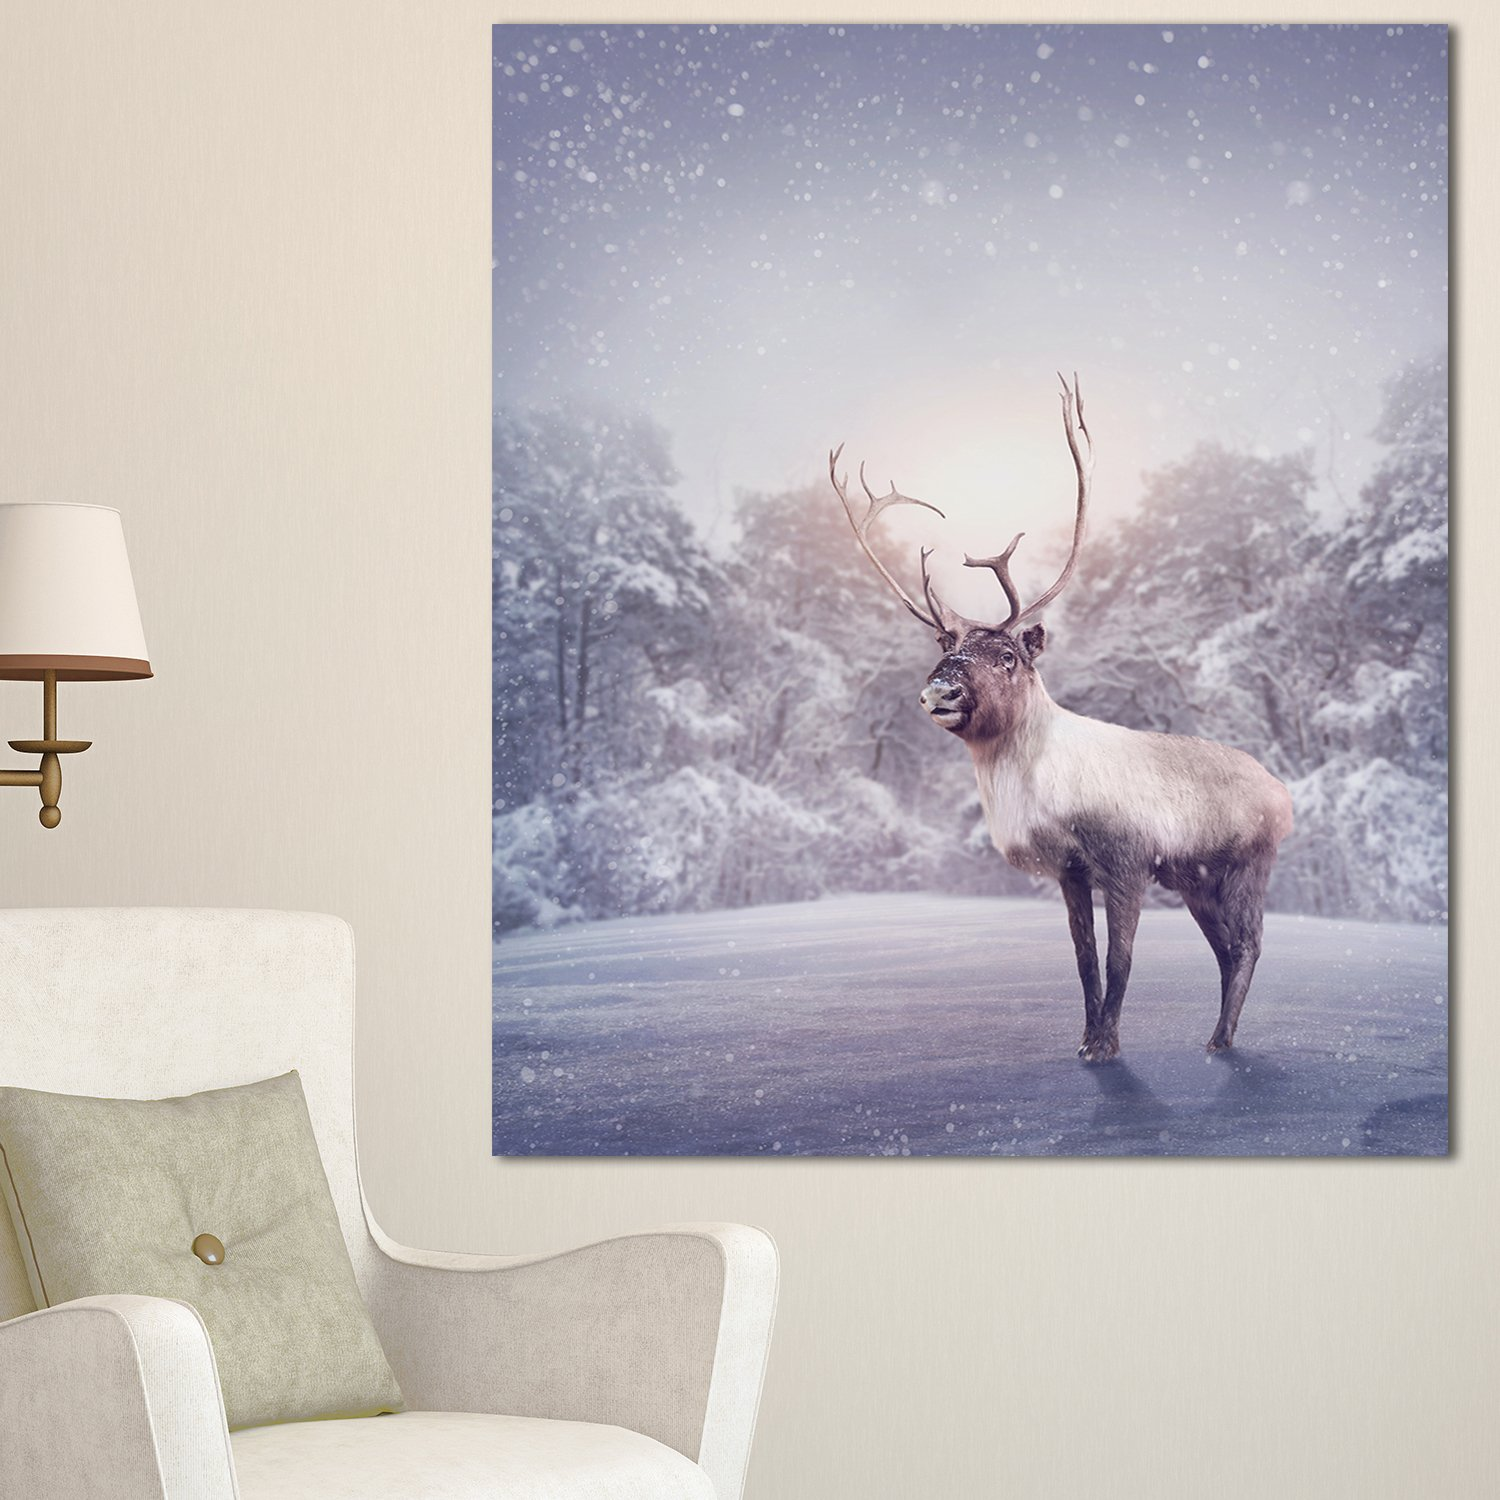 Buy Designart Mt12789 30 40 Huge Reindeer Standing In Snow Extra Large Animal Metal Wall Art 30x40 Grey 30x40 Online At Low Prices In India Amazon In